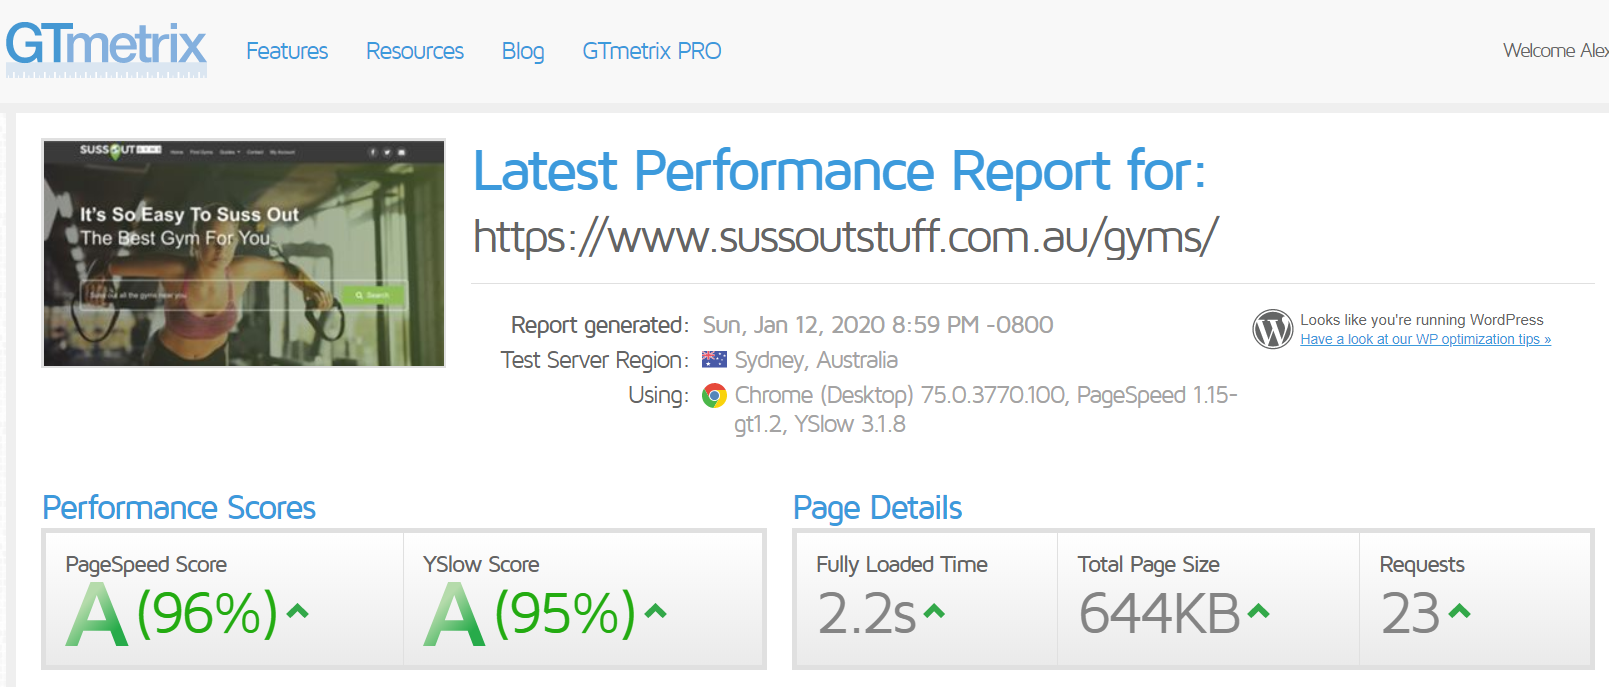 sussoutstuff.com.au GTMetrix performance